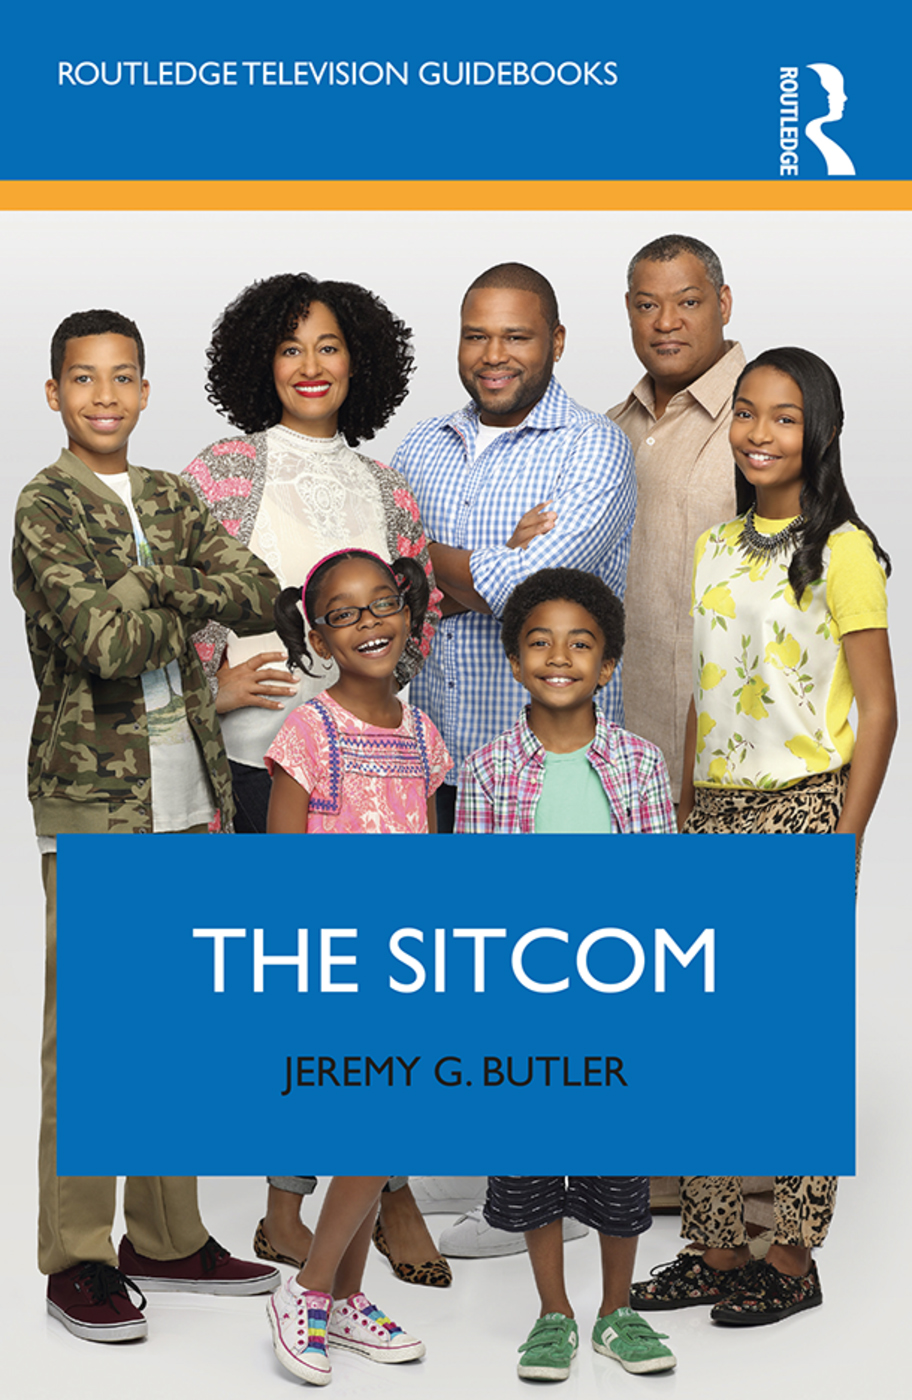 The Sitcom book cover